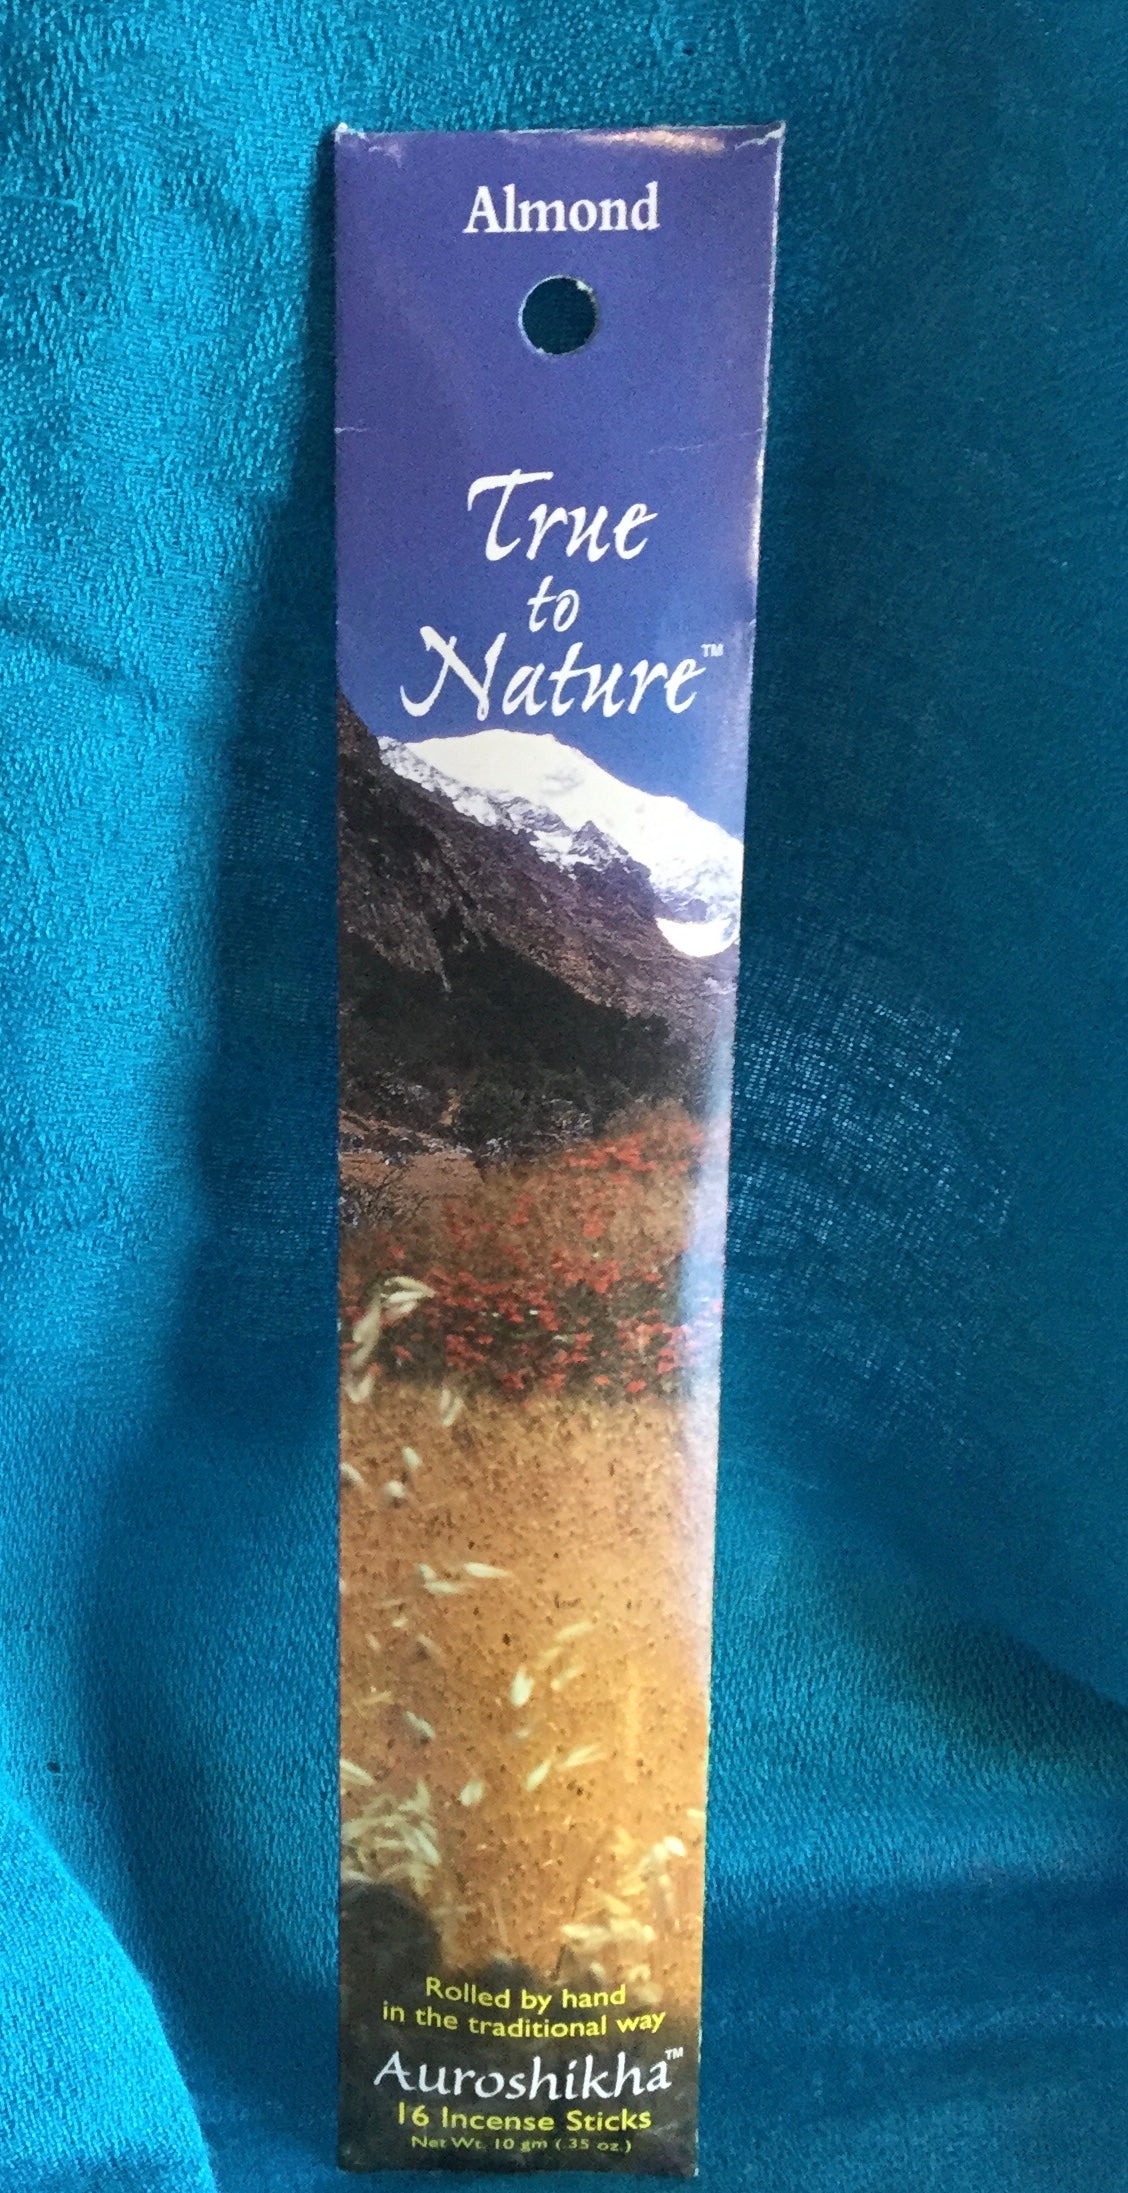 Auroshika Almond Incense Sticks